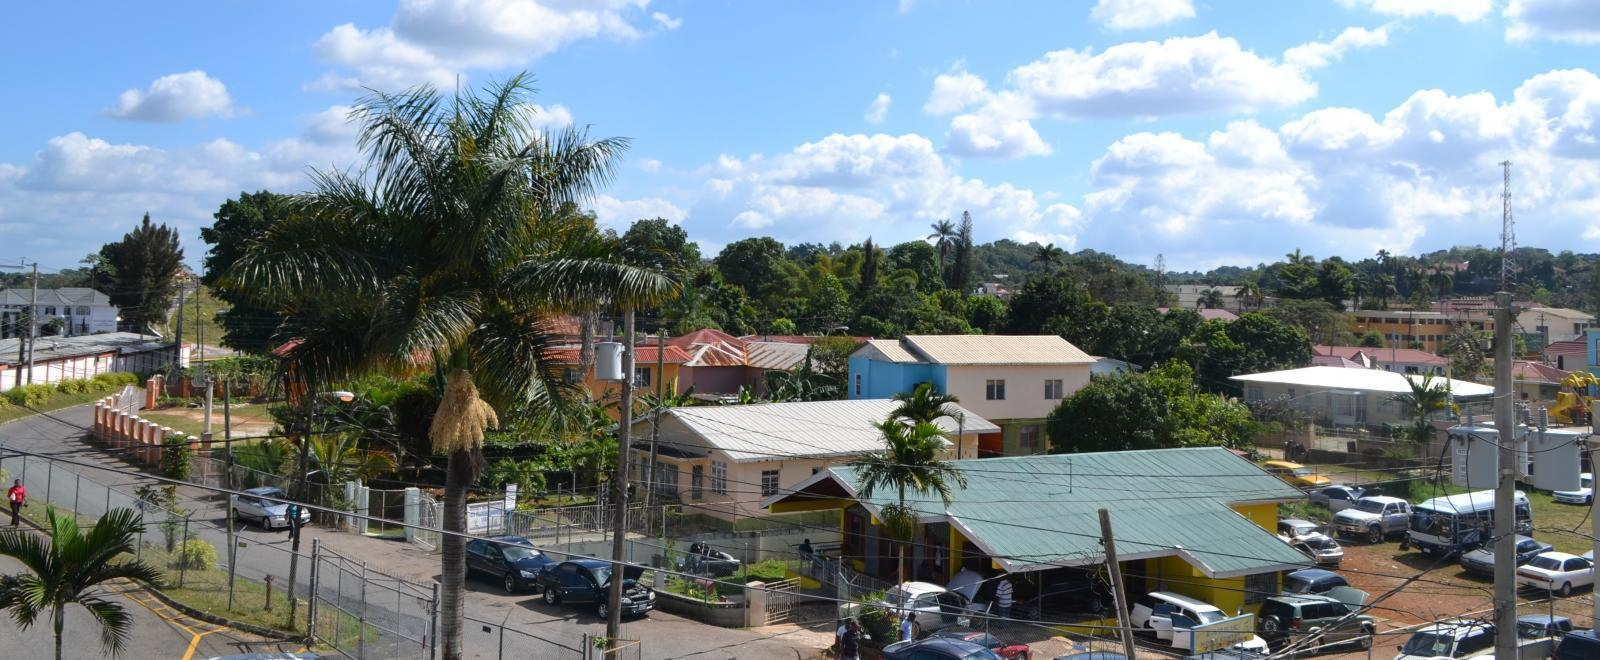 A colourful neighbourhood seen while volunteering in Jamaica with Projects Abroad.